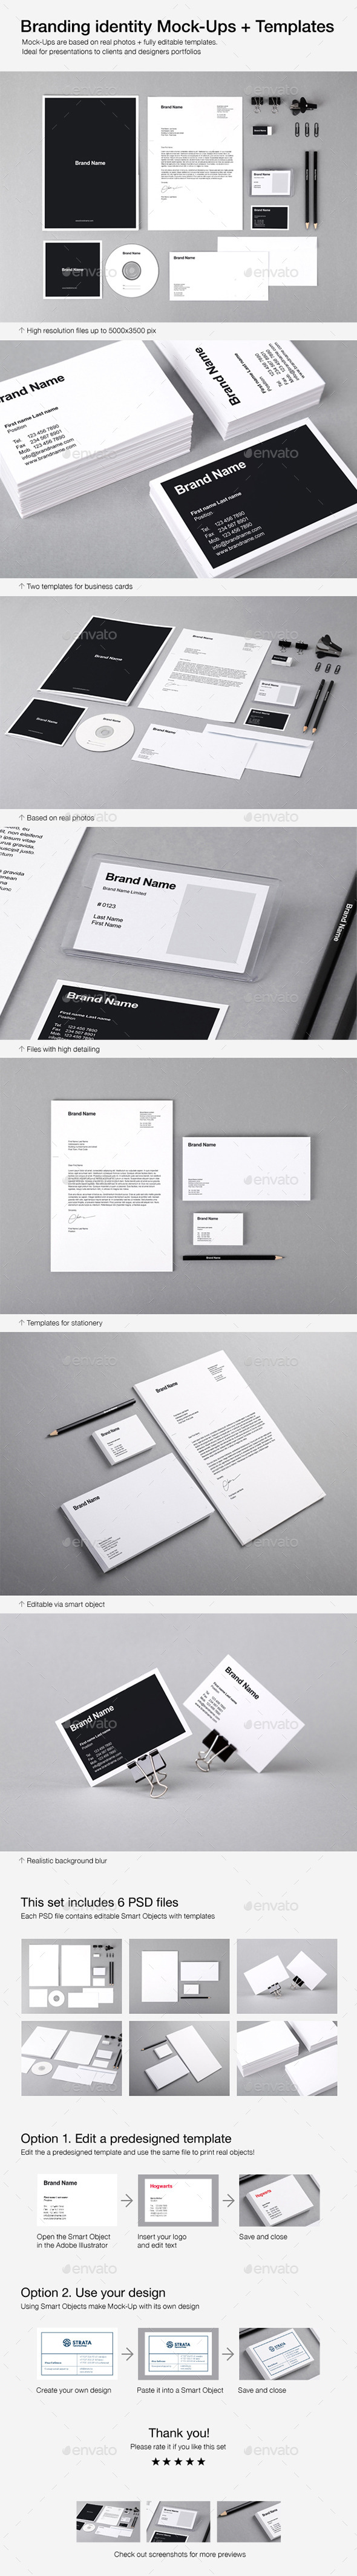 GraphicRiver Branding Identity Mock-Ups and Templates 8905239